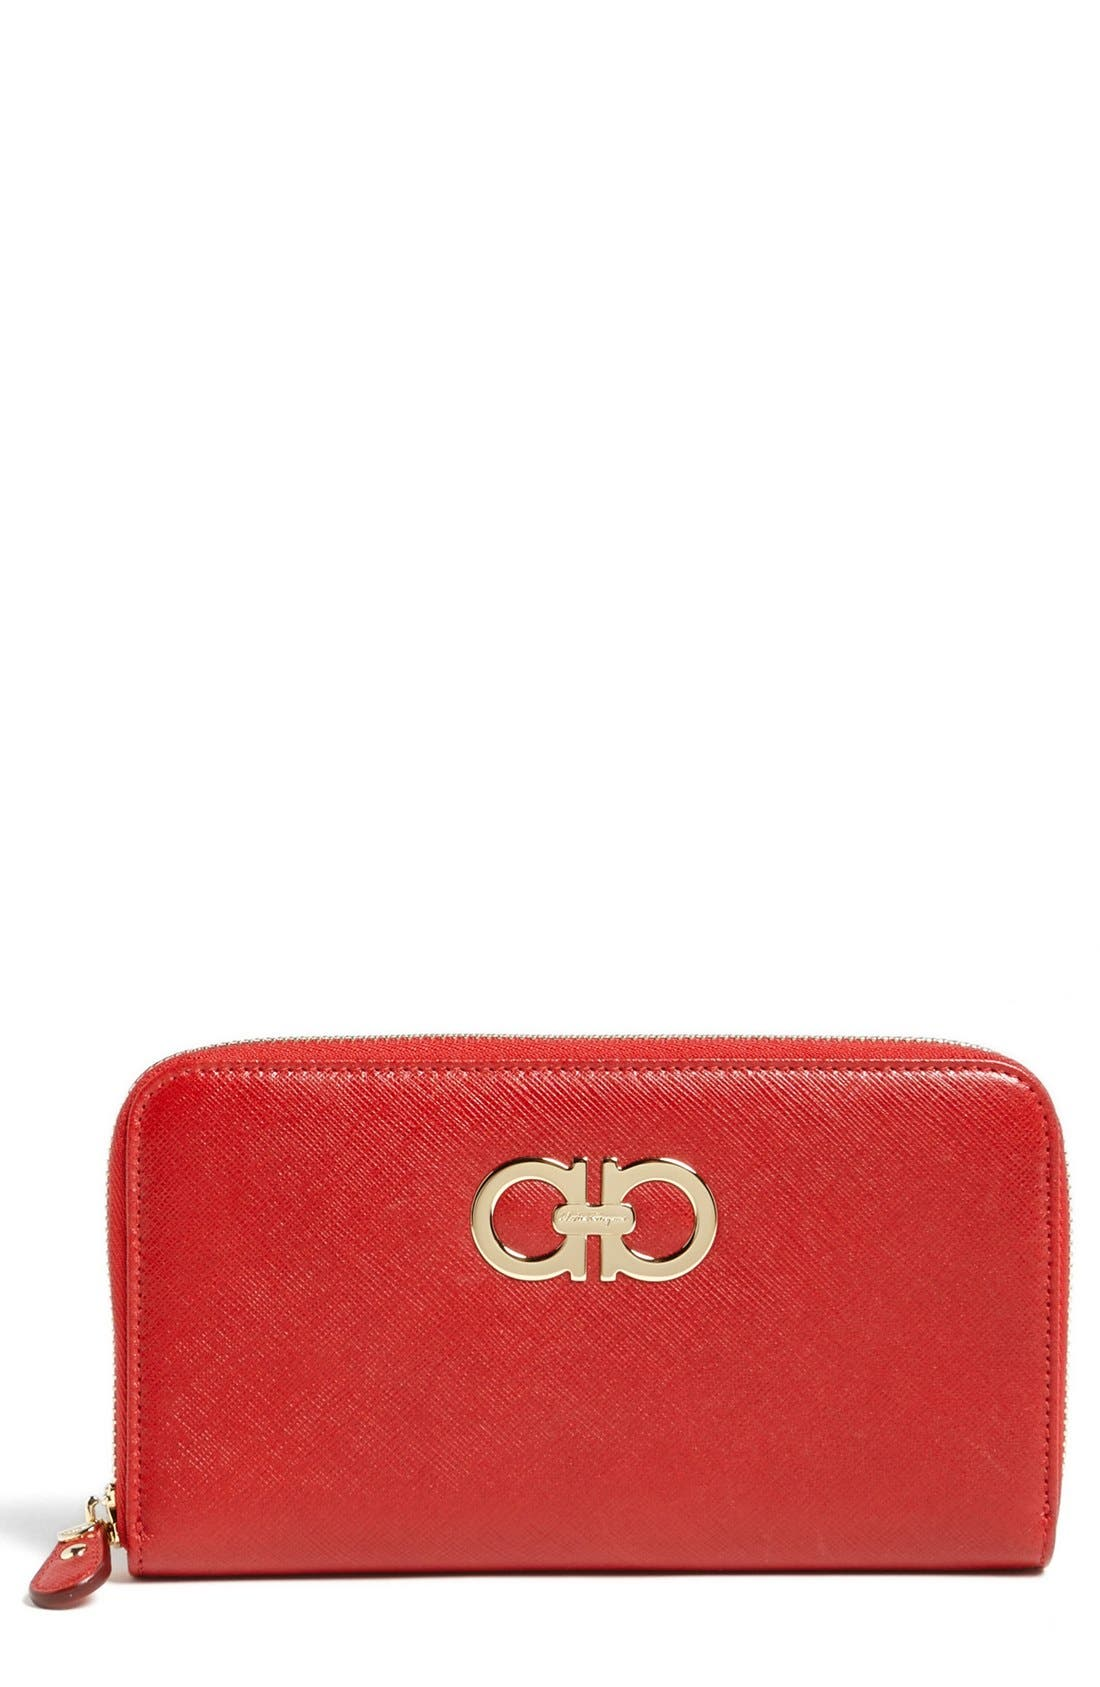 Alternate Image 1 Selected - Salvatore Ferragamo 'Gancini' Zip Around Wallet